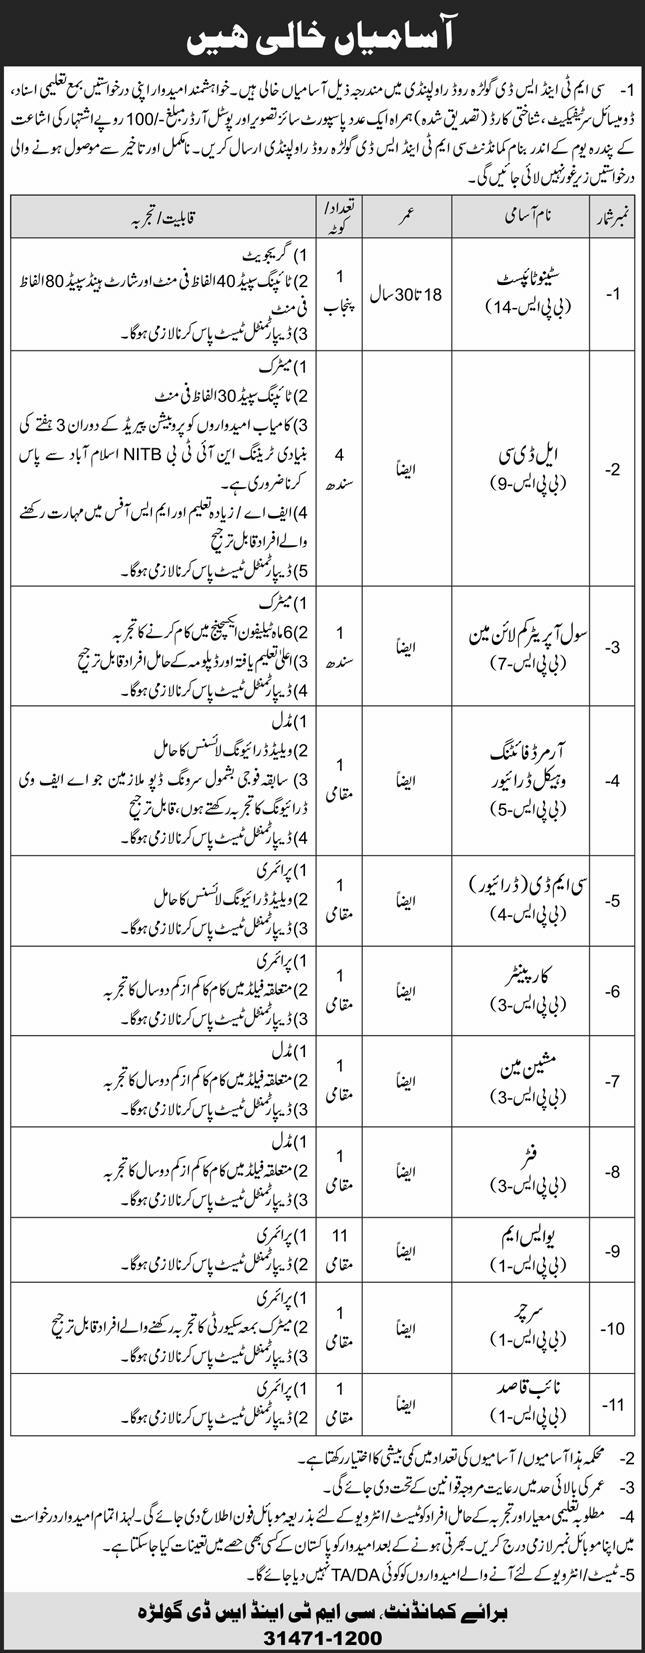 CMT&SD Golra Road Rawalpindi Pak Army Jobs December 2020